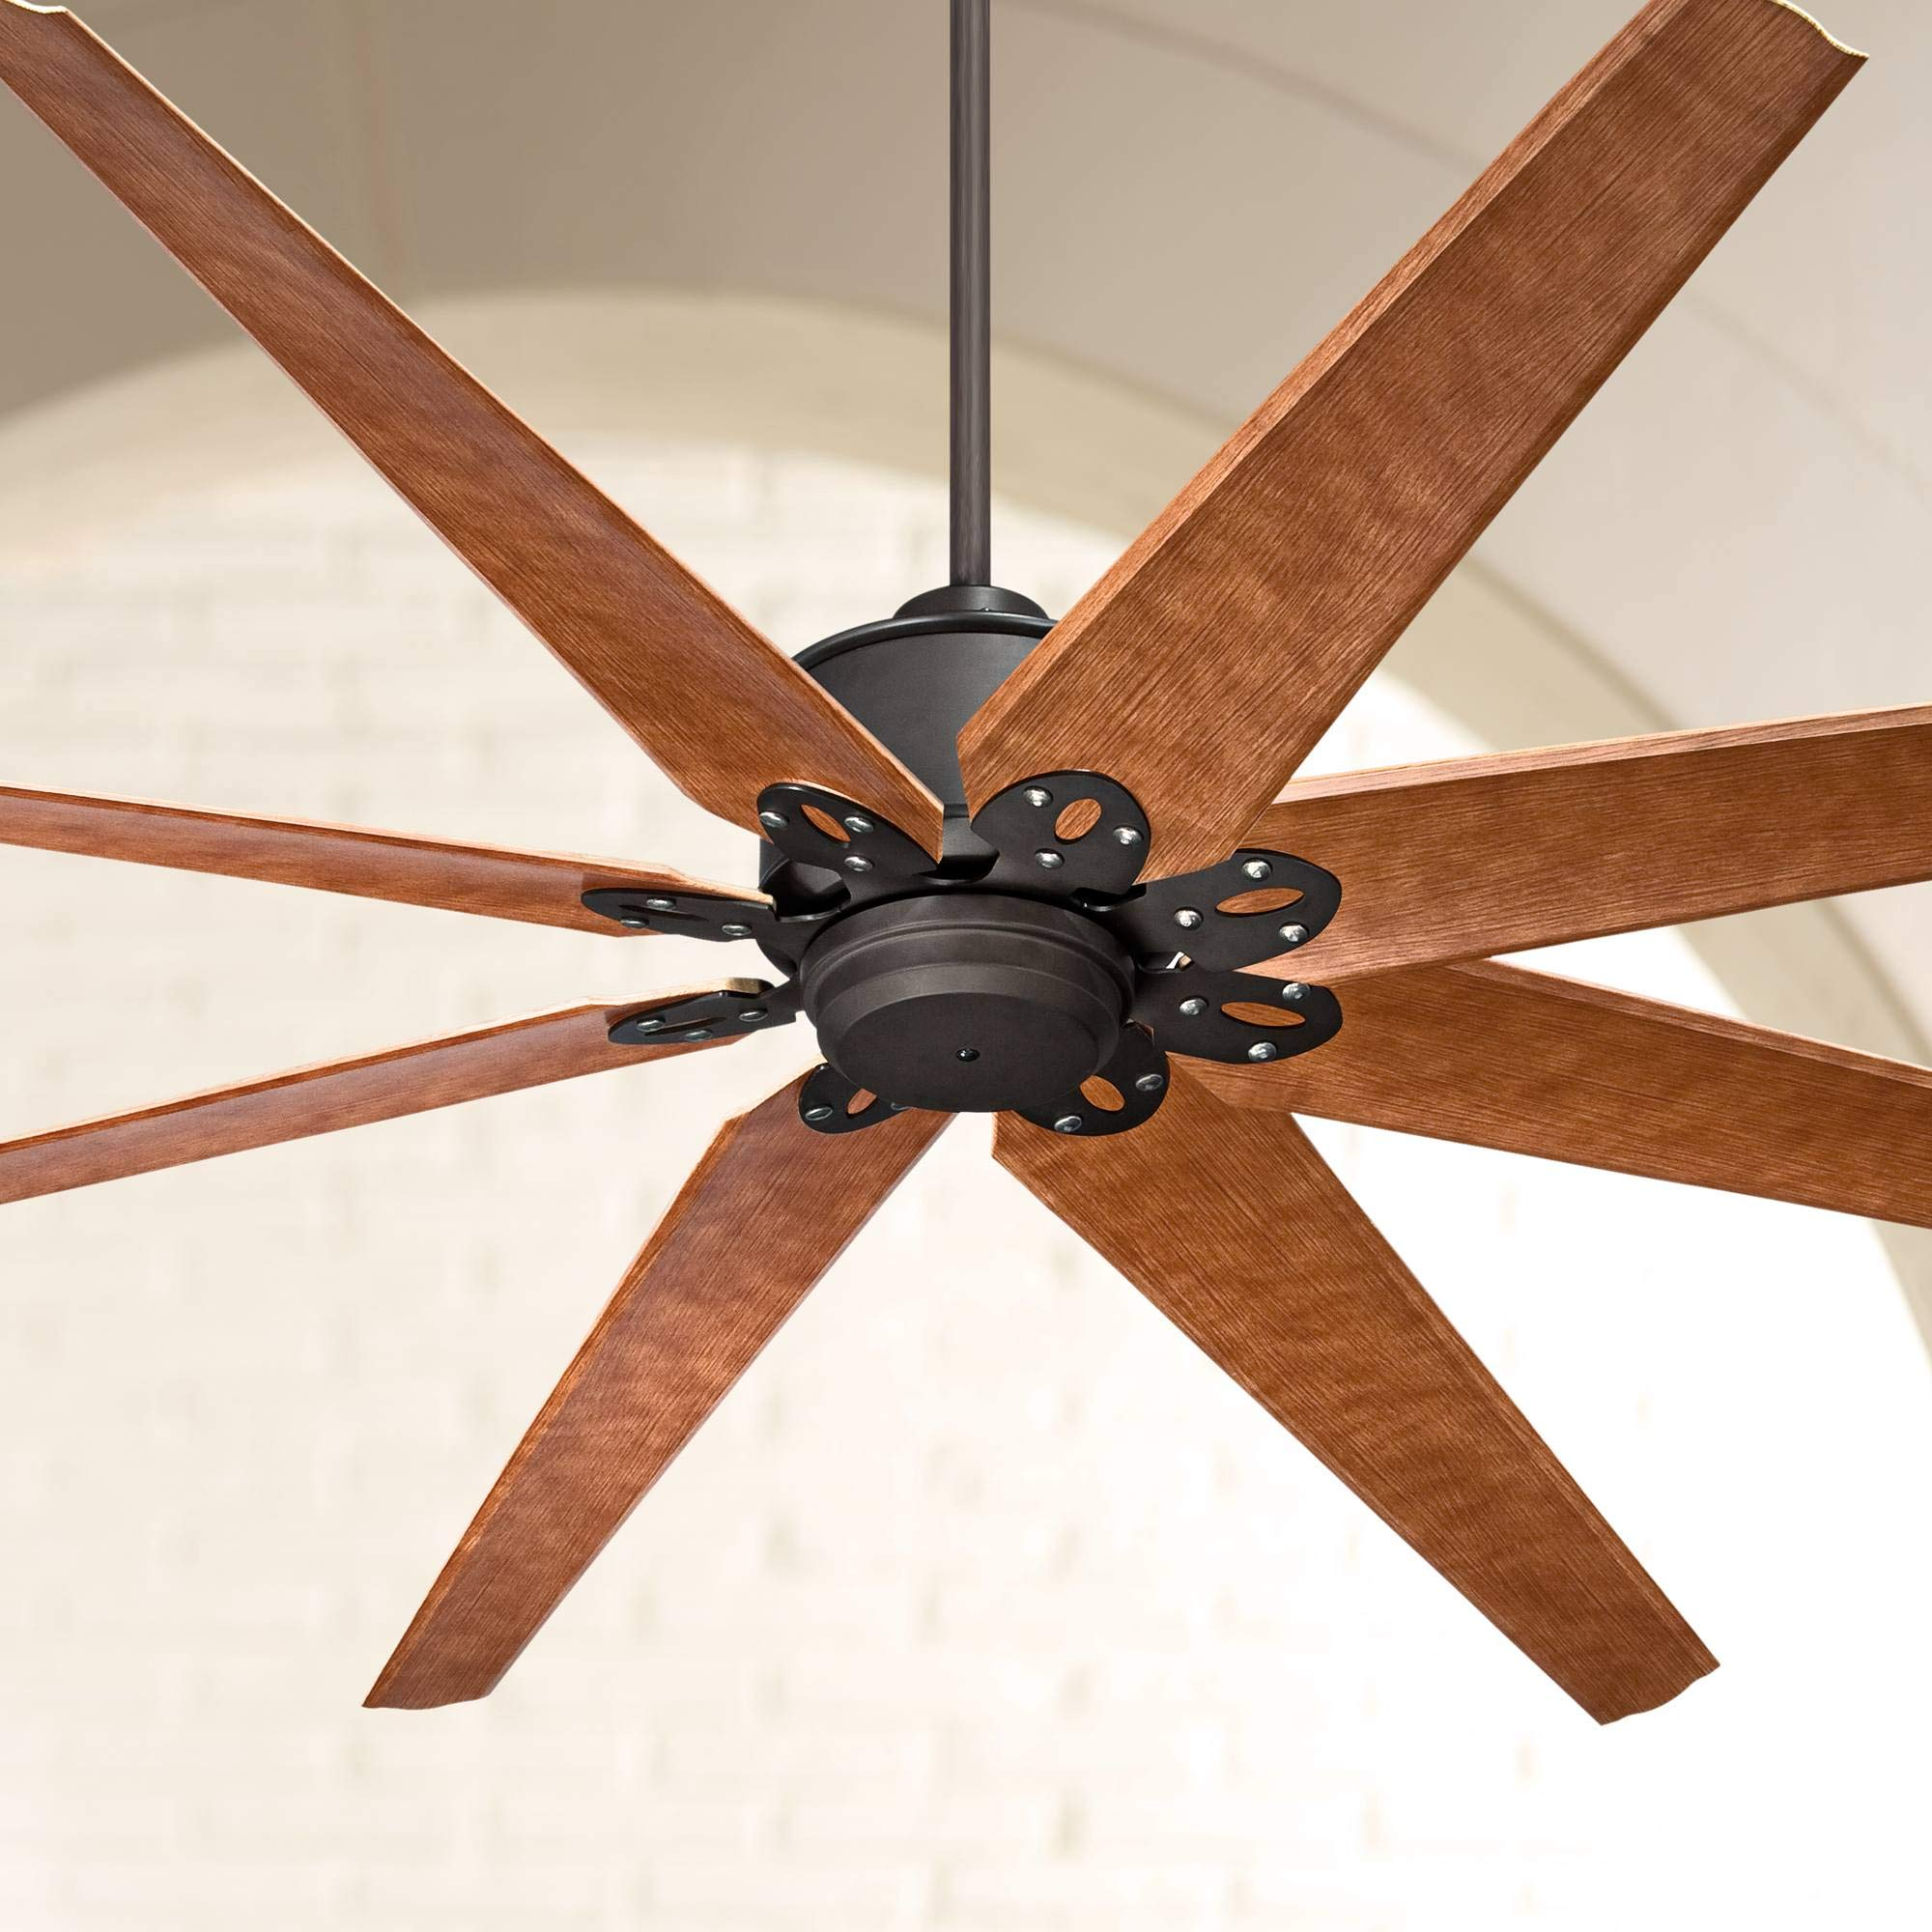 72'' Predator Outdoor Ceiling Fan with Remote Control Large English Bronze Cherry Damp Rated for Patio Porch - Casa Vieja